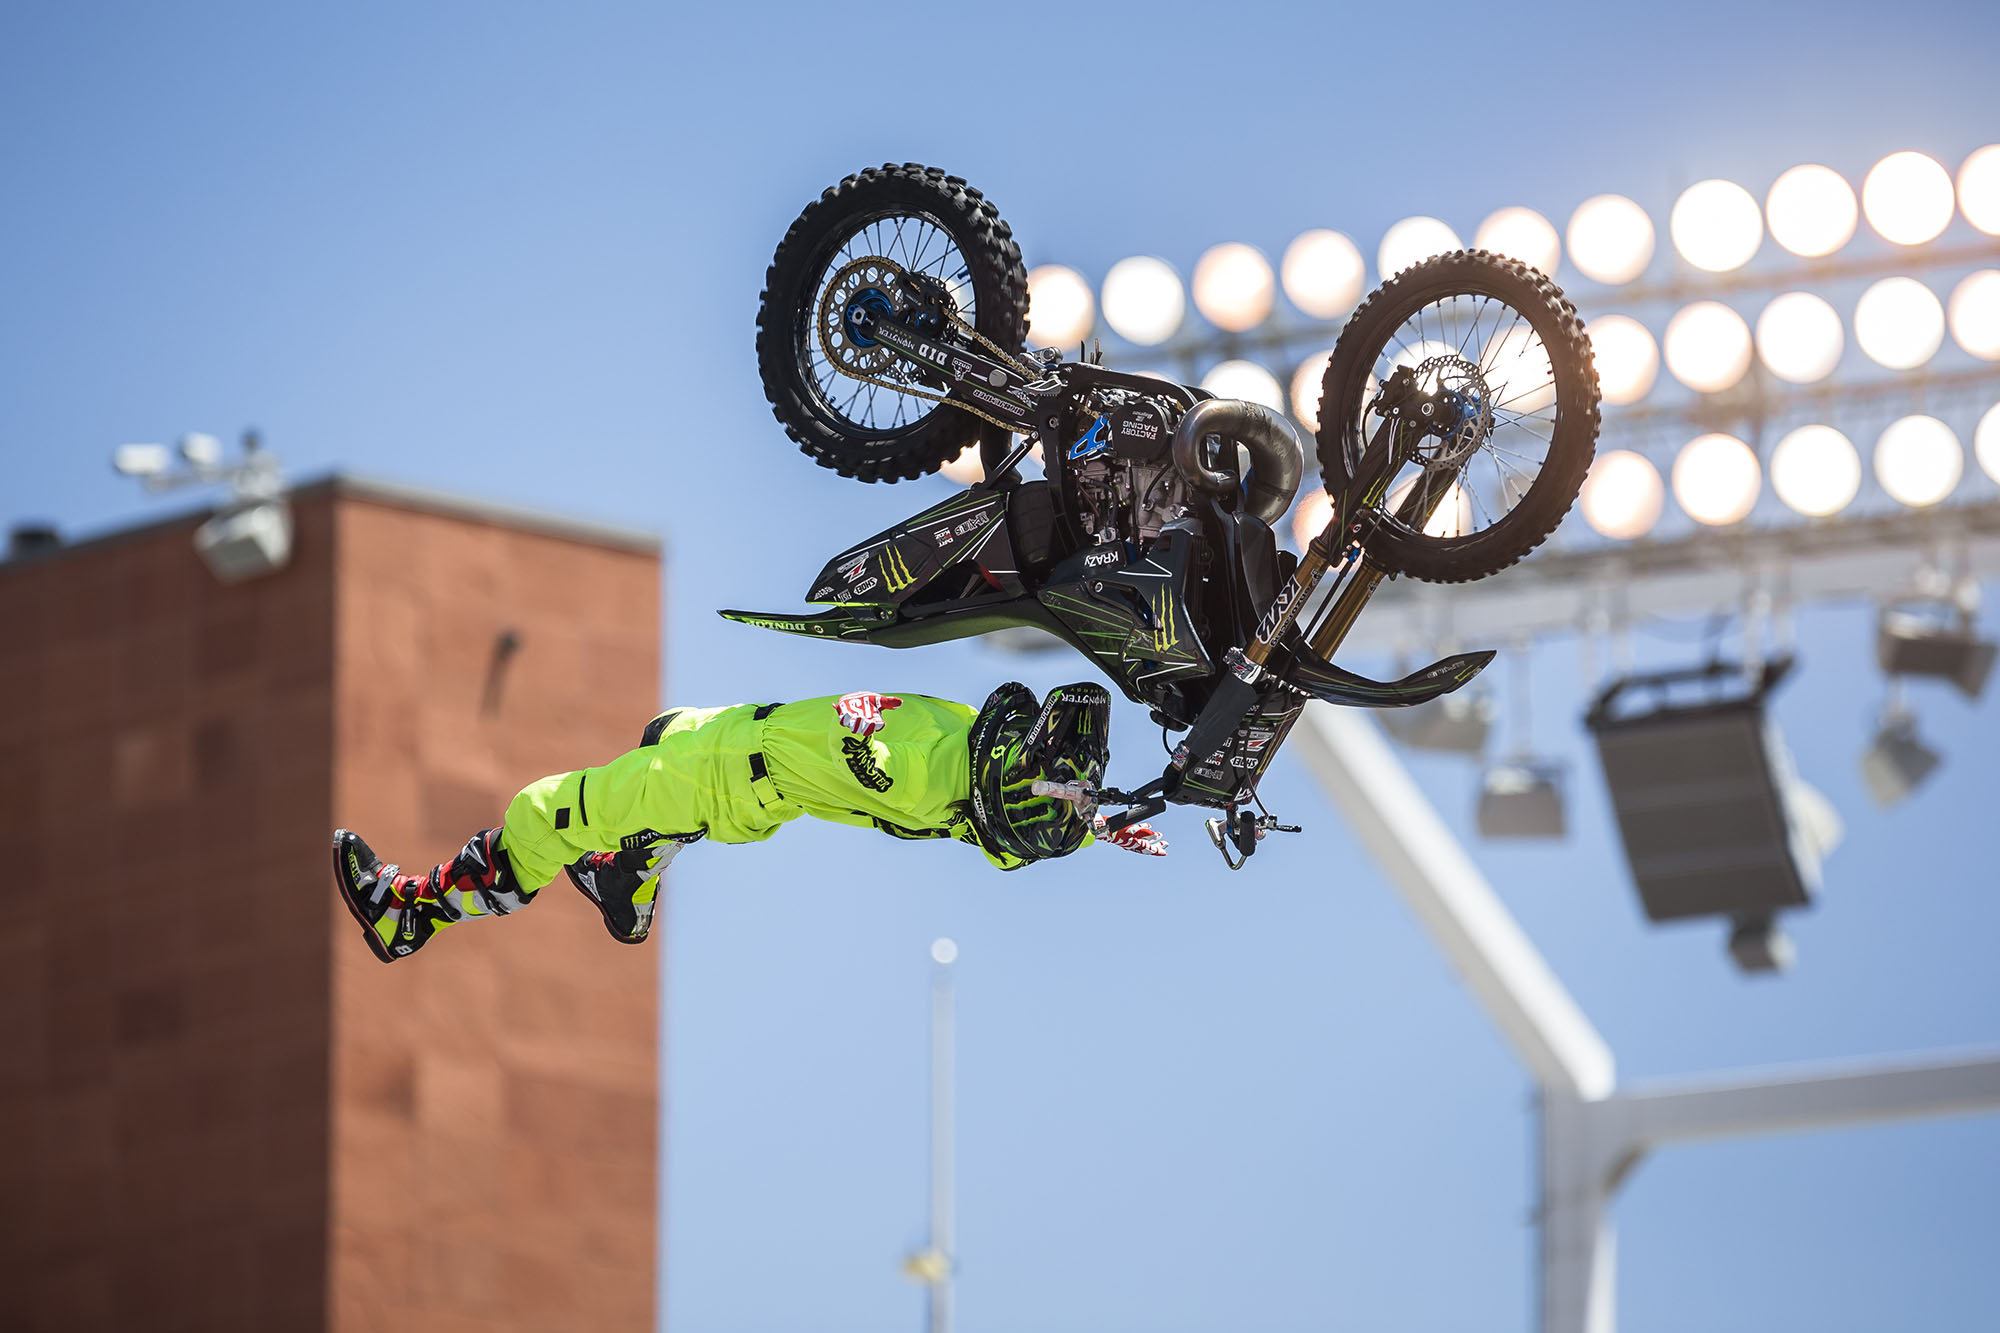 As crazy as it may seem, this trick is pretty standard at the Nitro World Games.